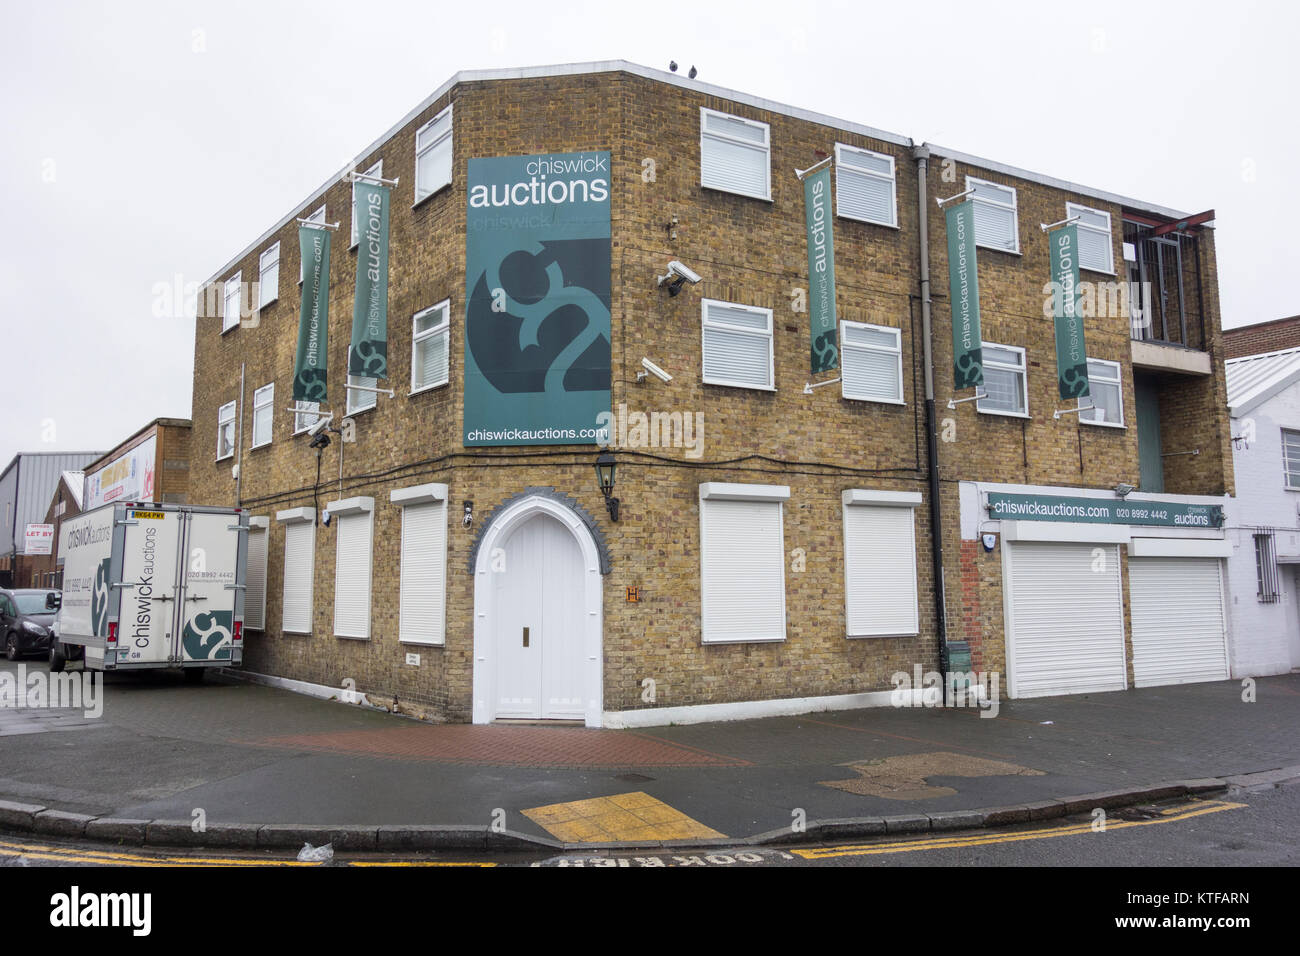 Chiswick Auctions, Colville Road, London, W3, - Stock Image